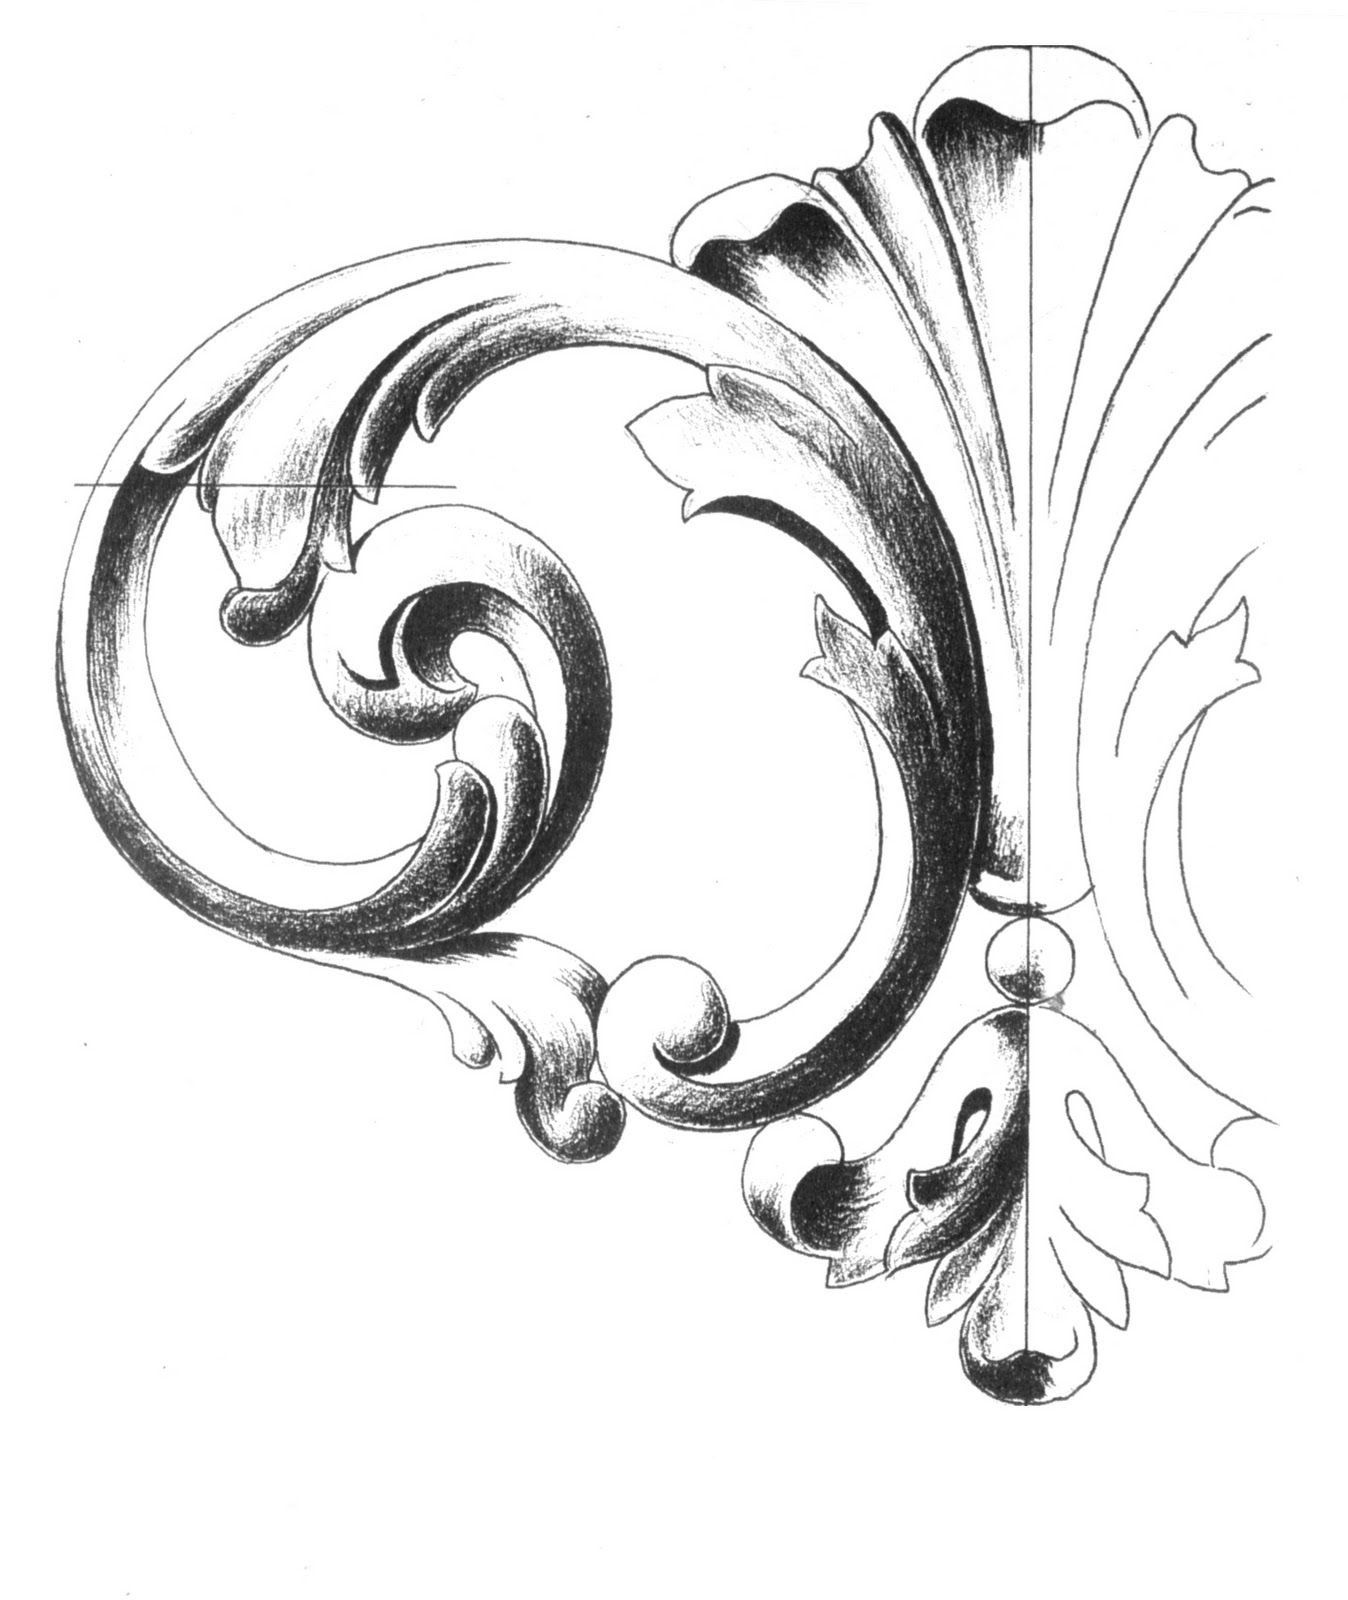 39 How To Draw The Acanthus 39 Is A Perennial Topic With A Rich History I Covered Some Points In Part I And Part Ornament Drawing Acanthus Acanthus Leaf